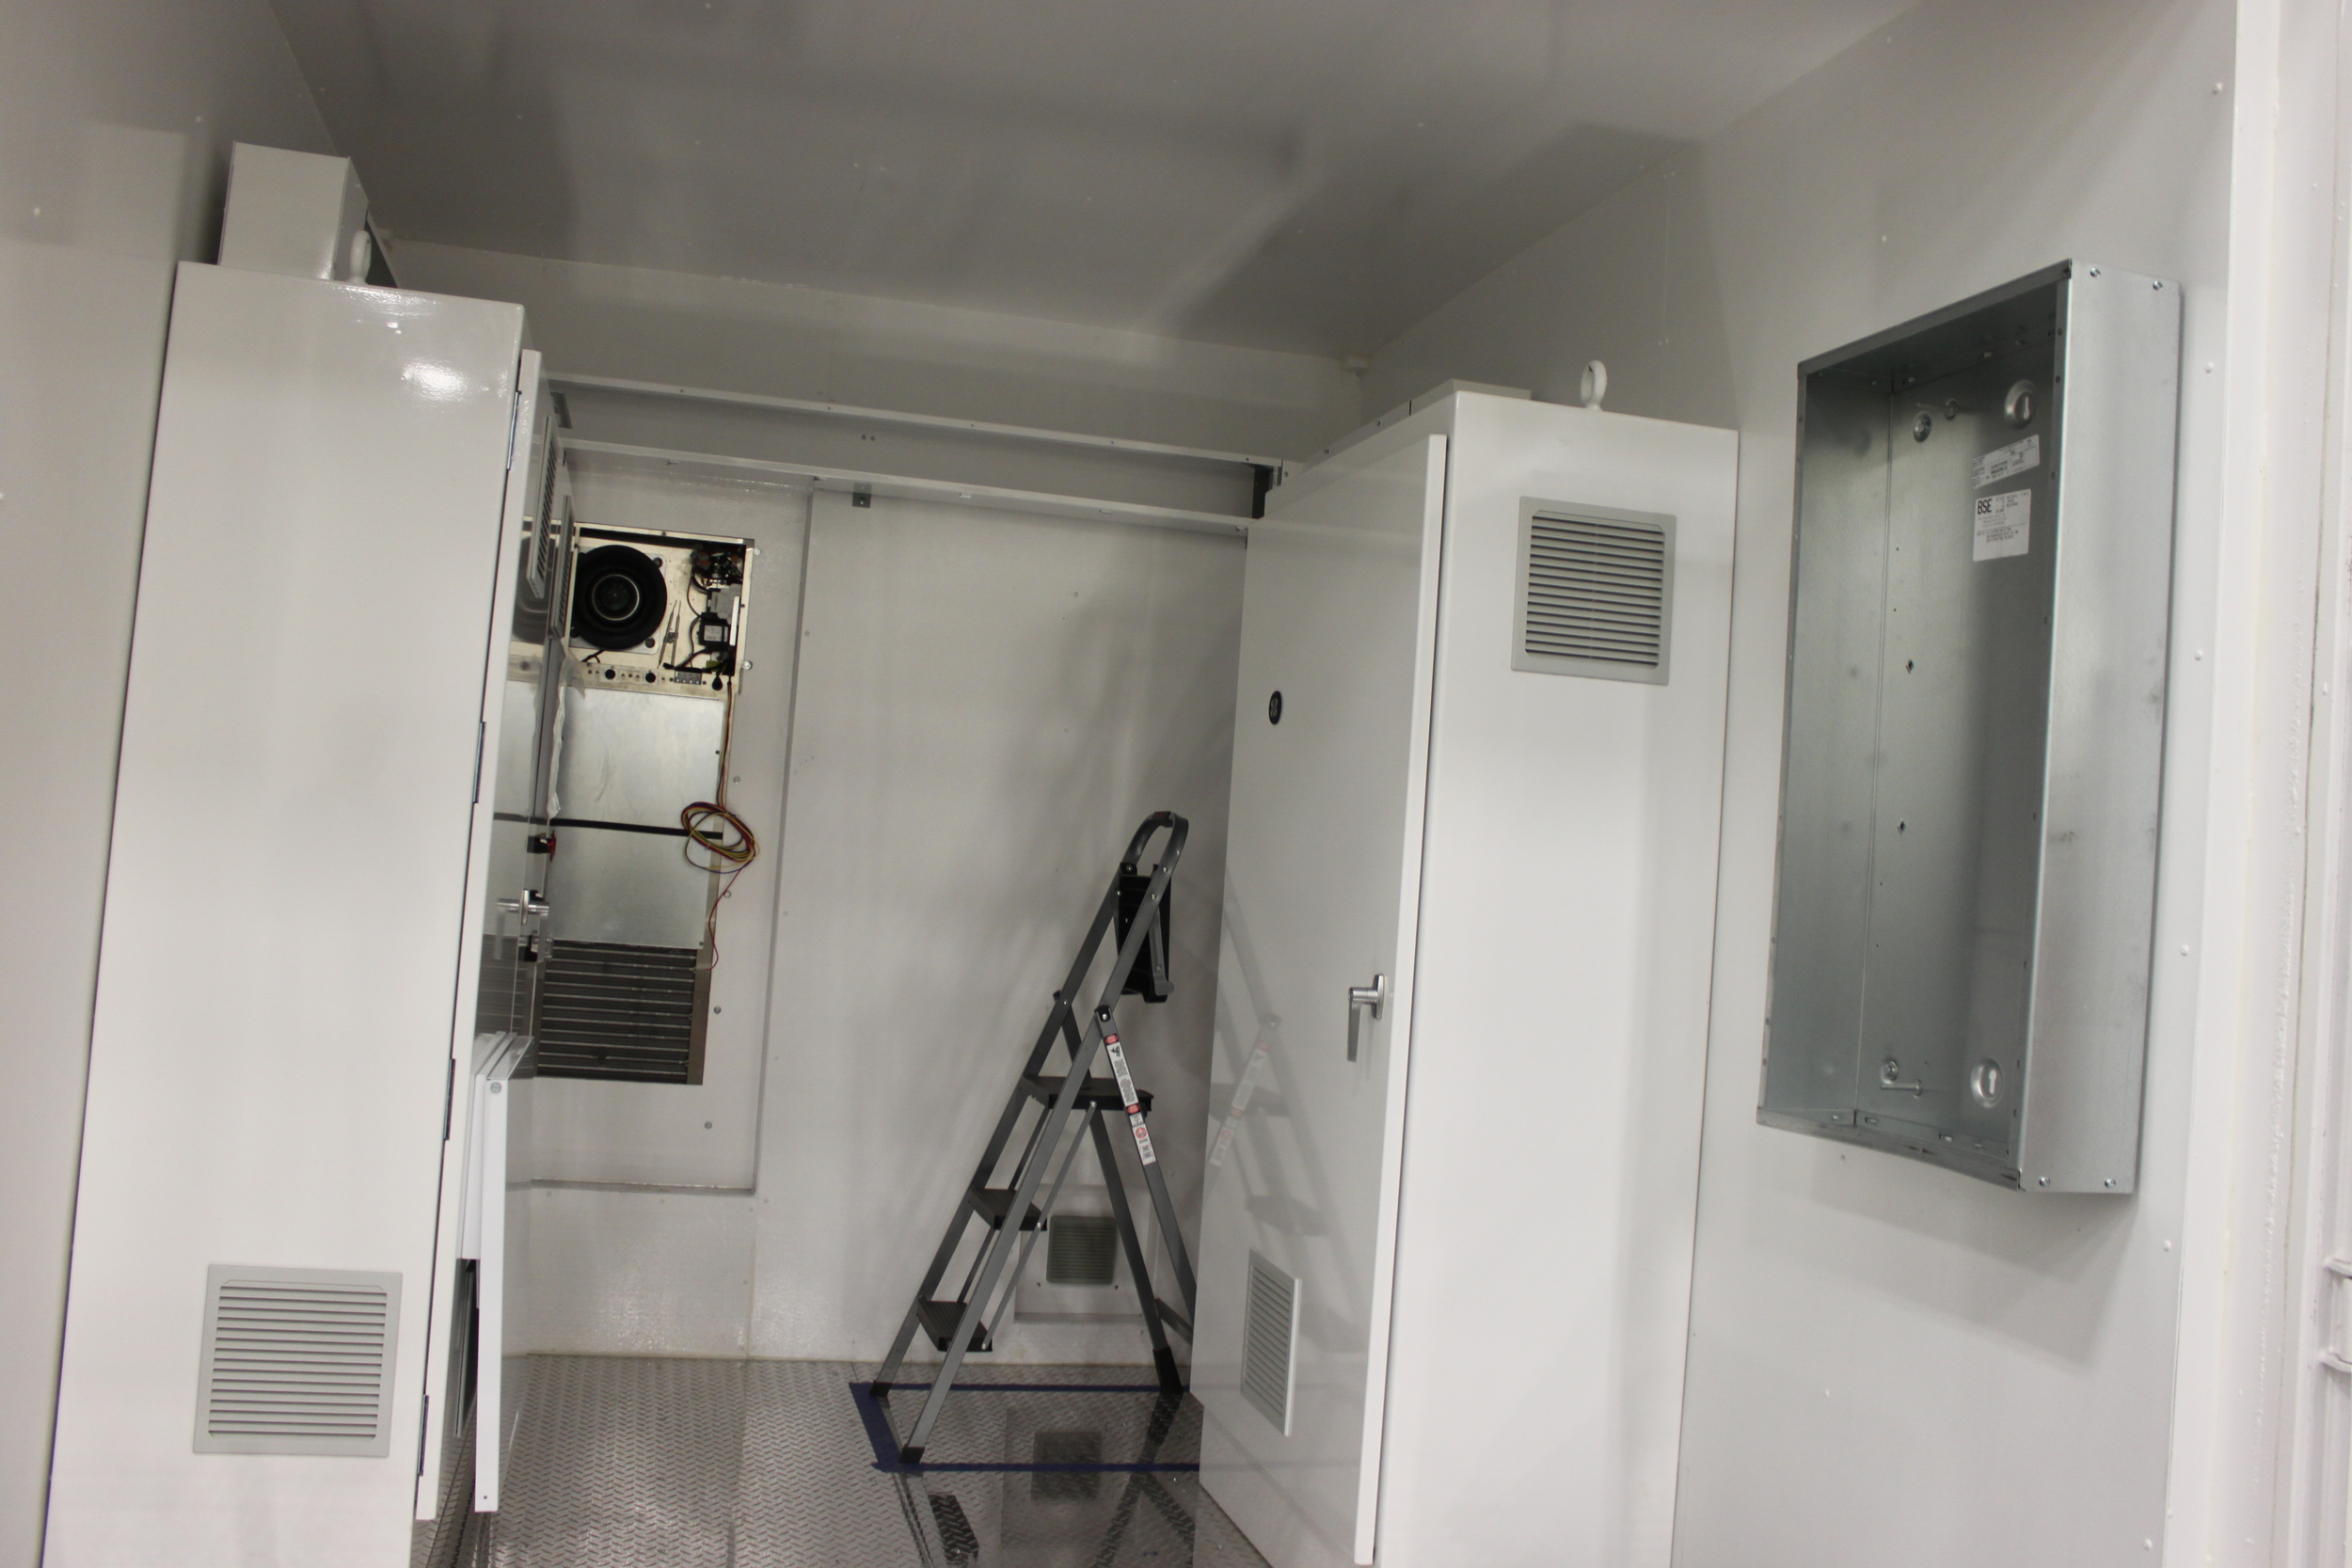 10' after the customer started installing their equipment